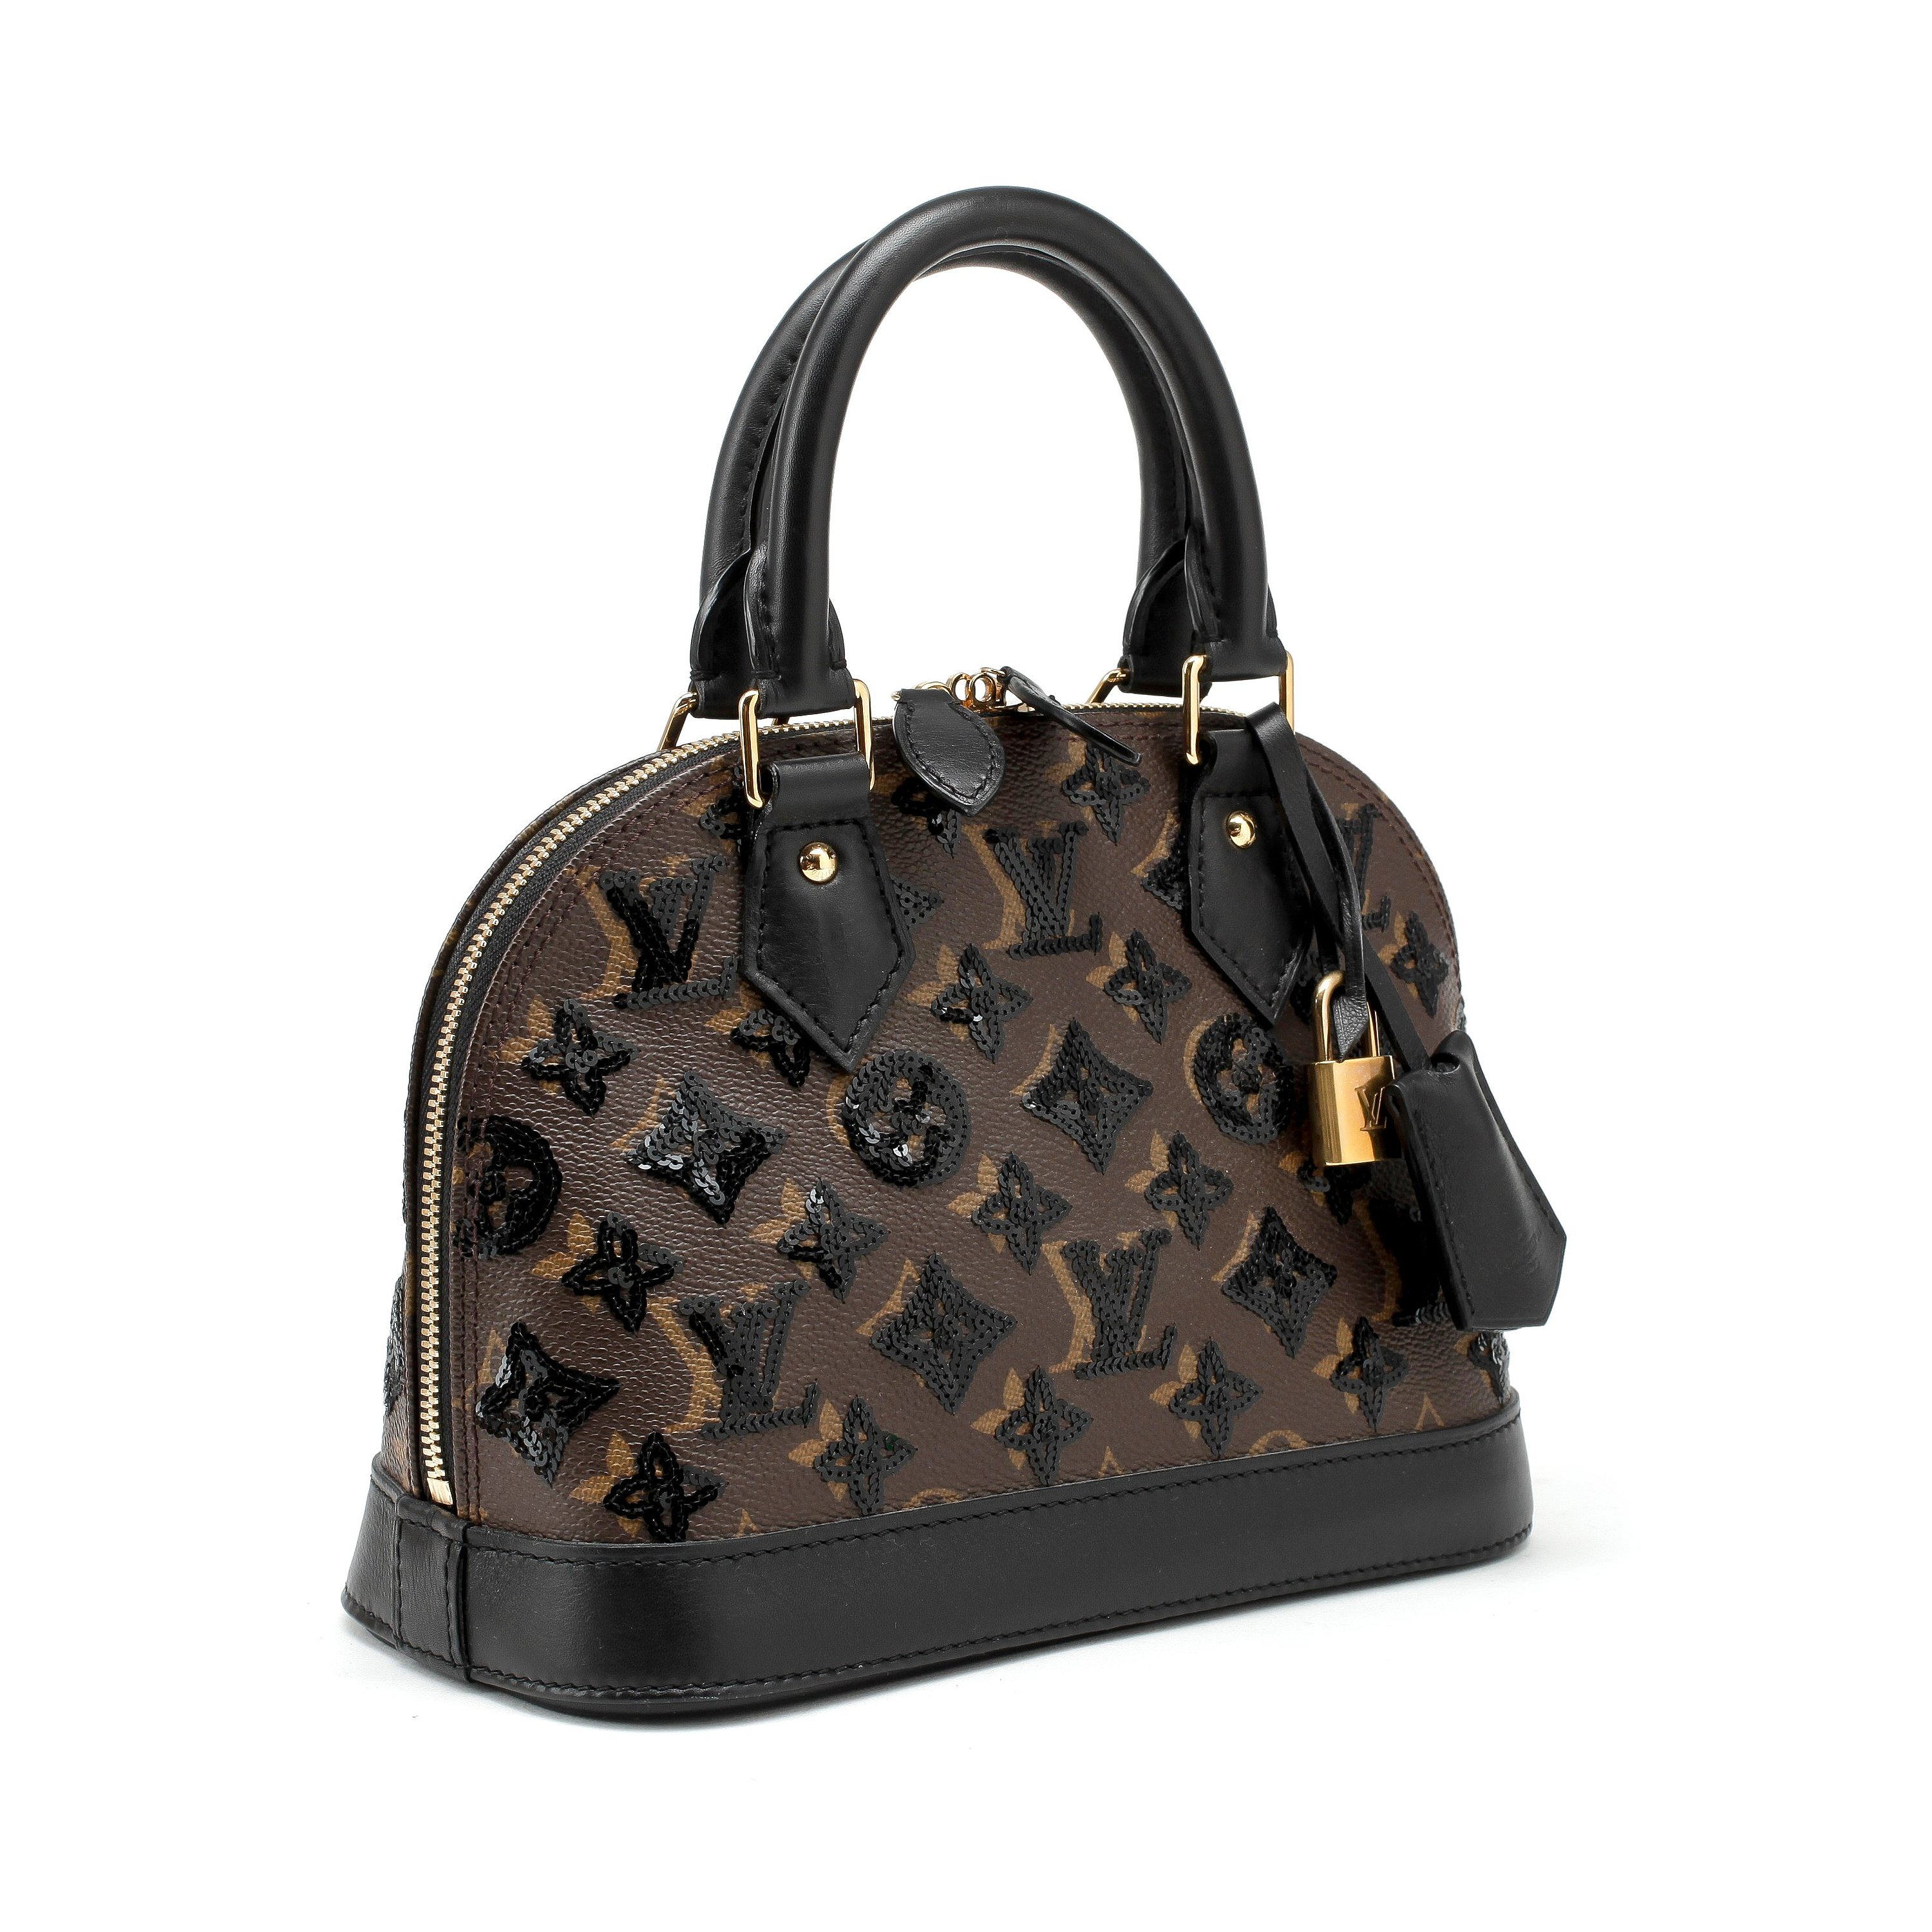 Louis Vuitton A Monogram Canvas Bag Alma Bb Monograme Ellipse Noir Limited Edition 2011 Bukowskis